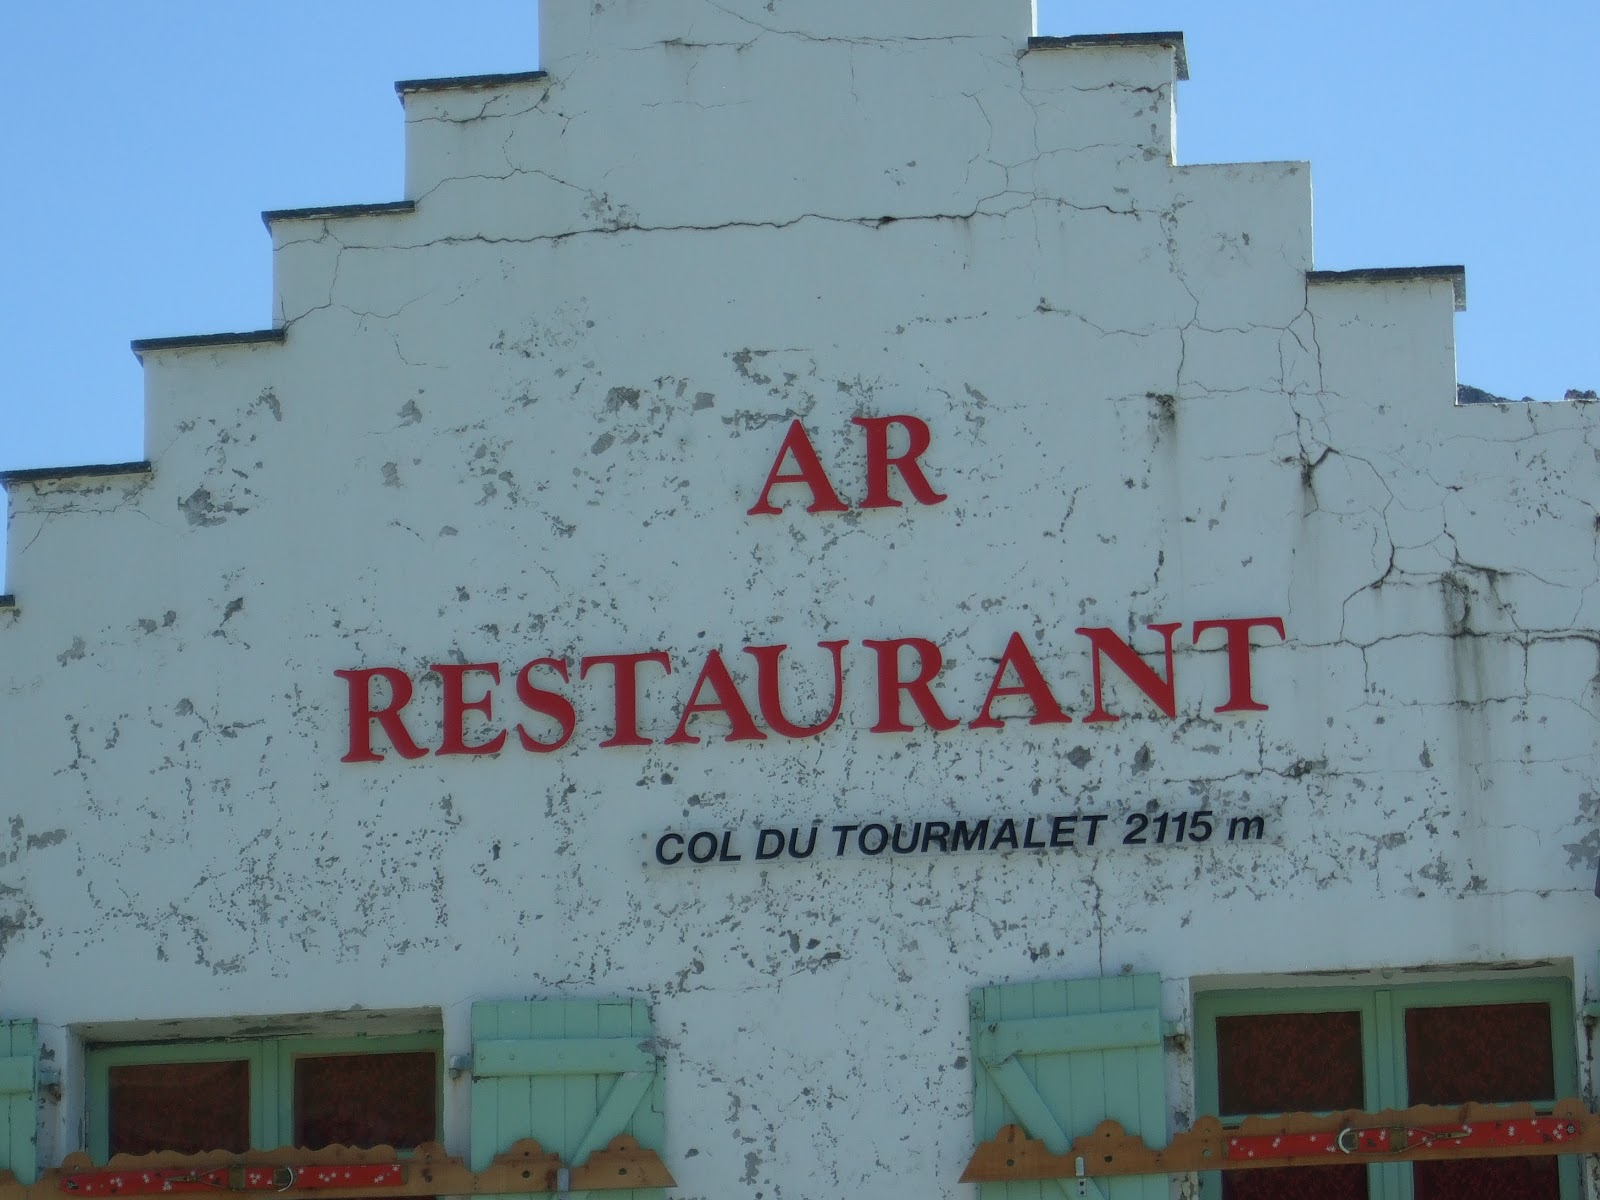 Cycling Col du Tourmalet - photo of restaurant at top